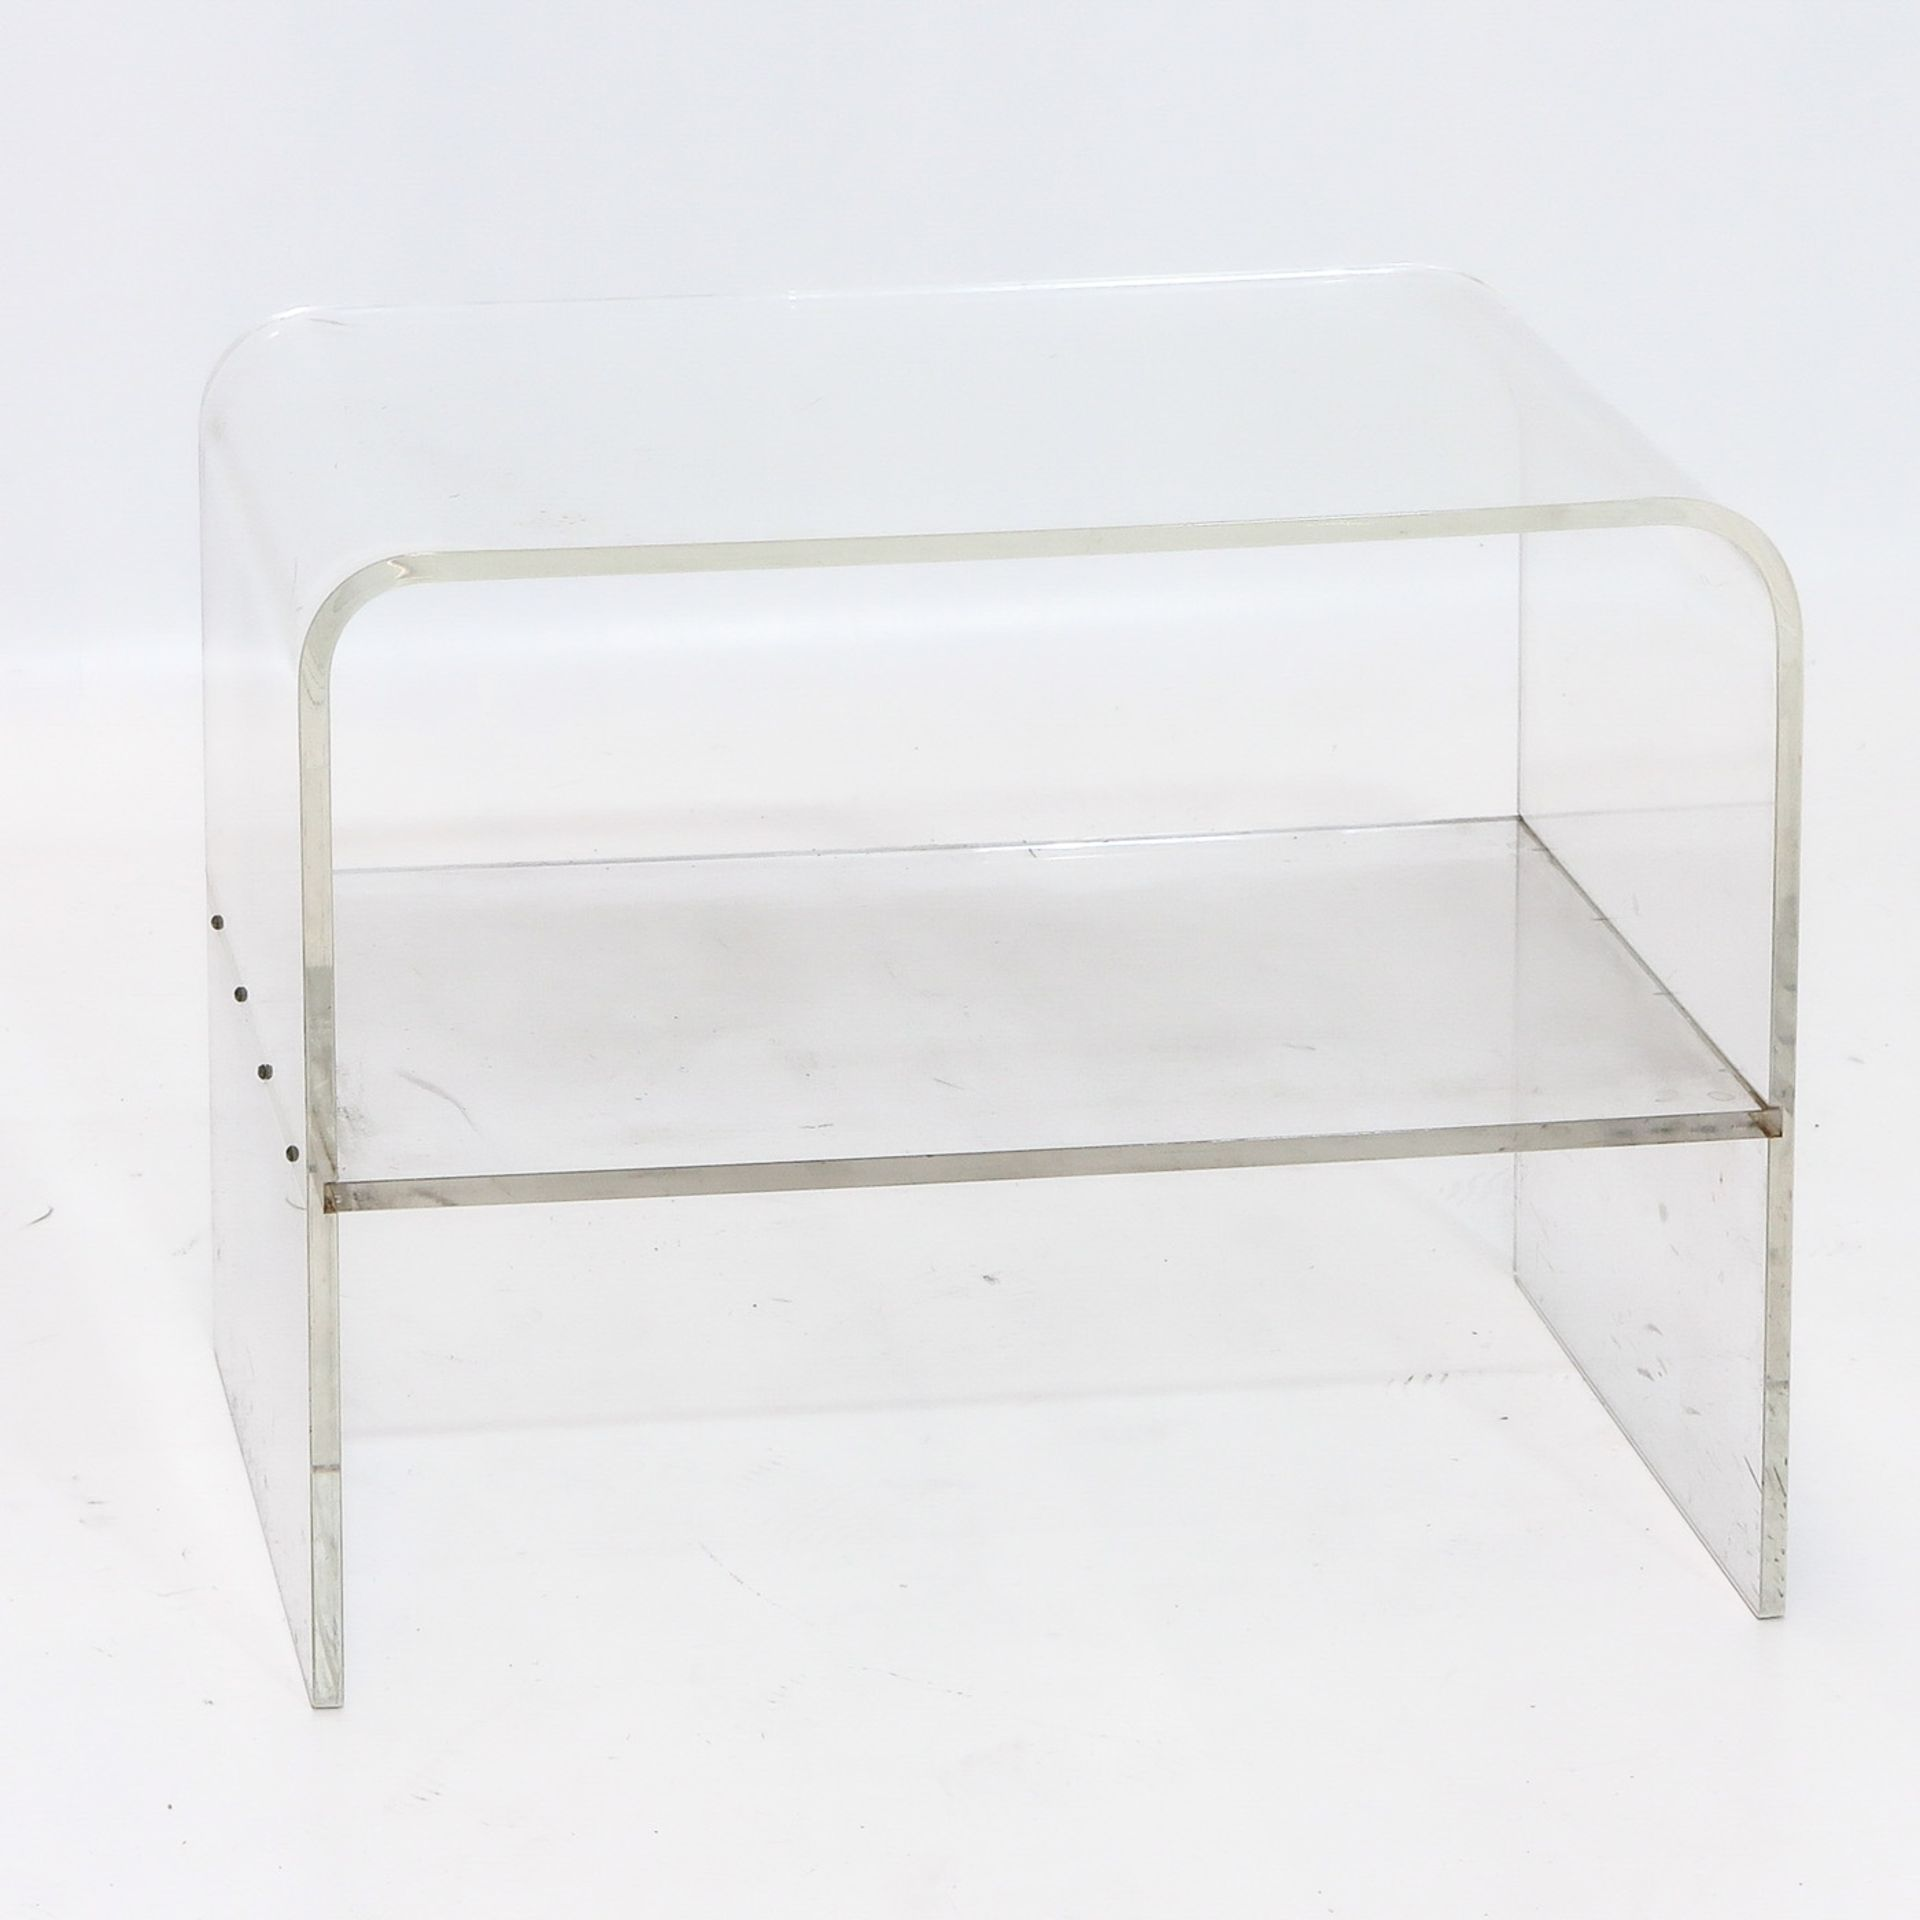 Los 1171 - A 1970s Plexiglass Coffee table